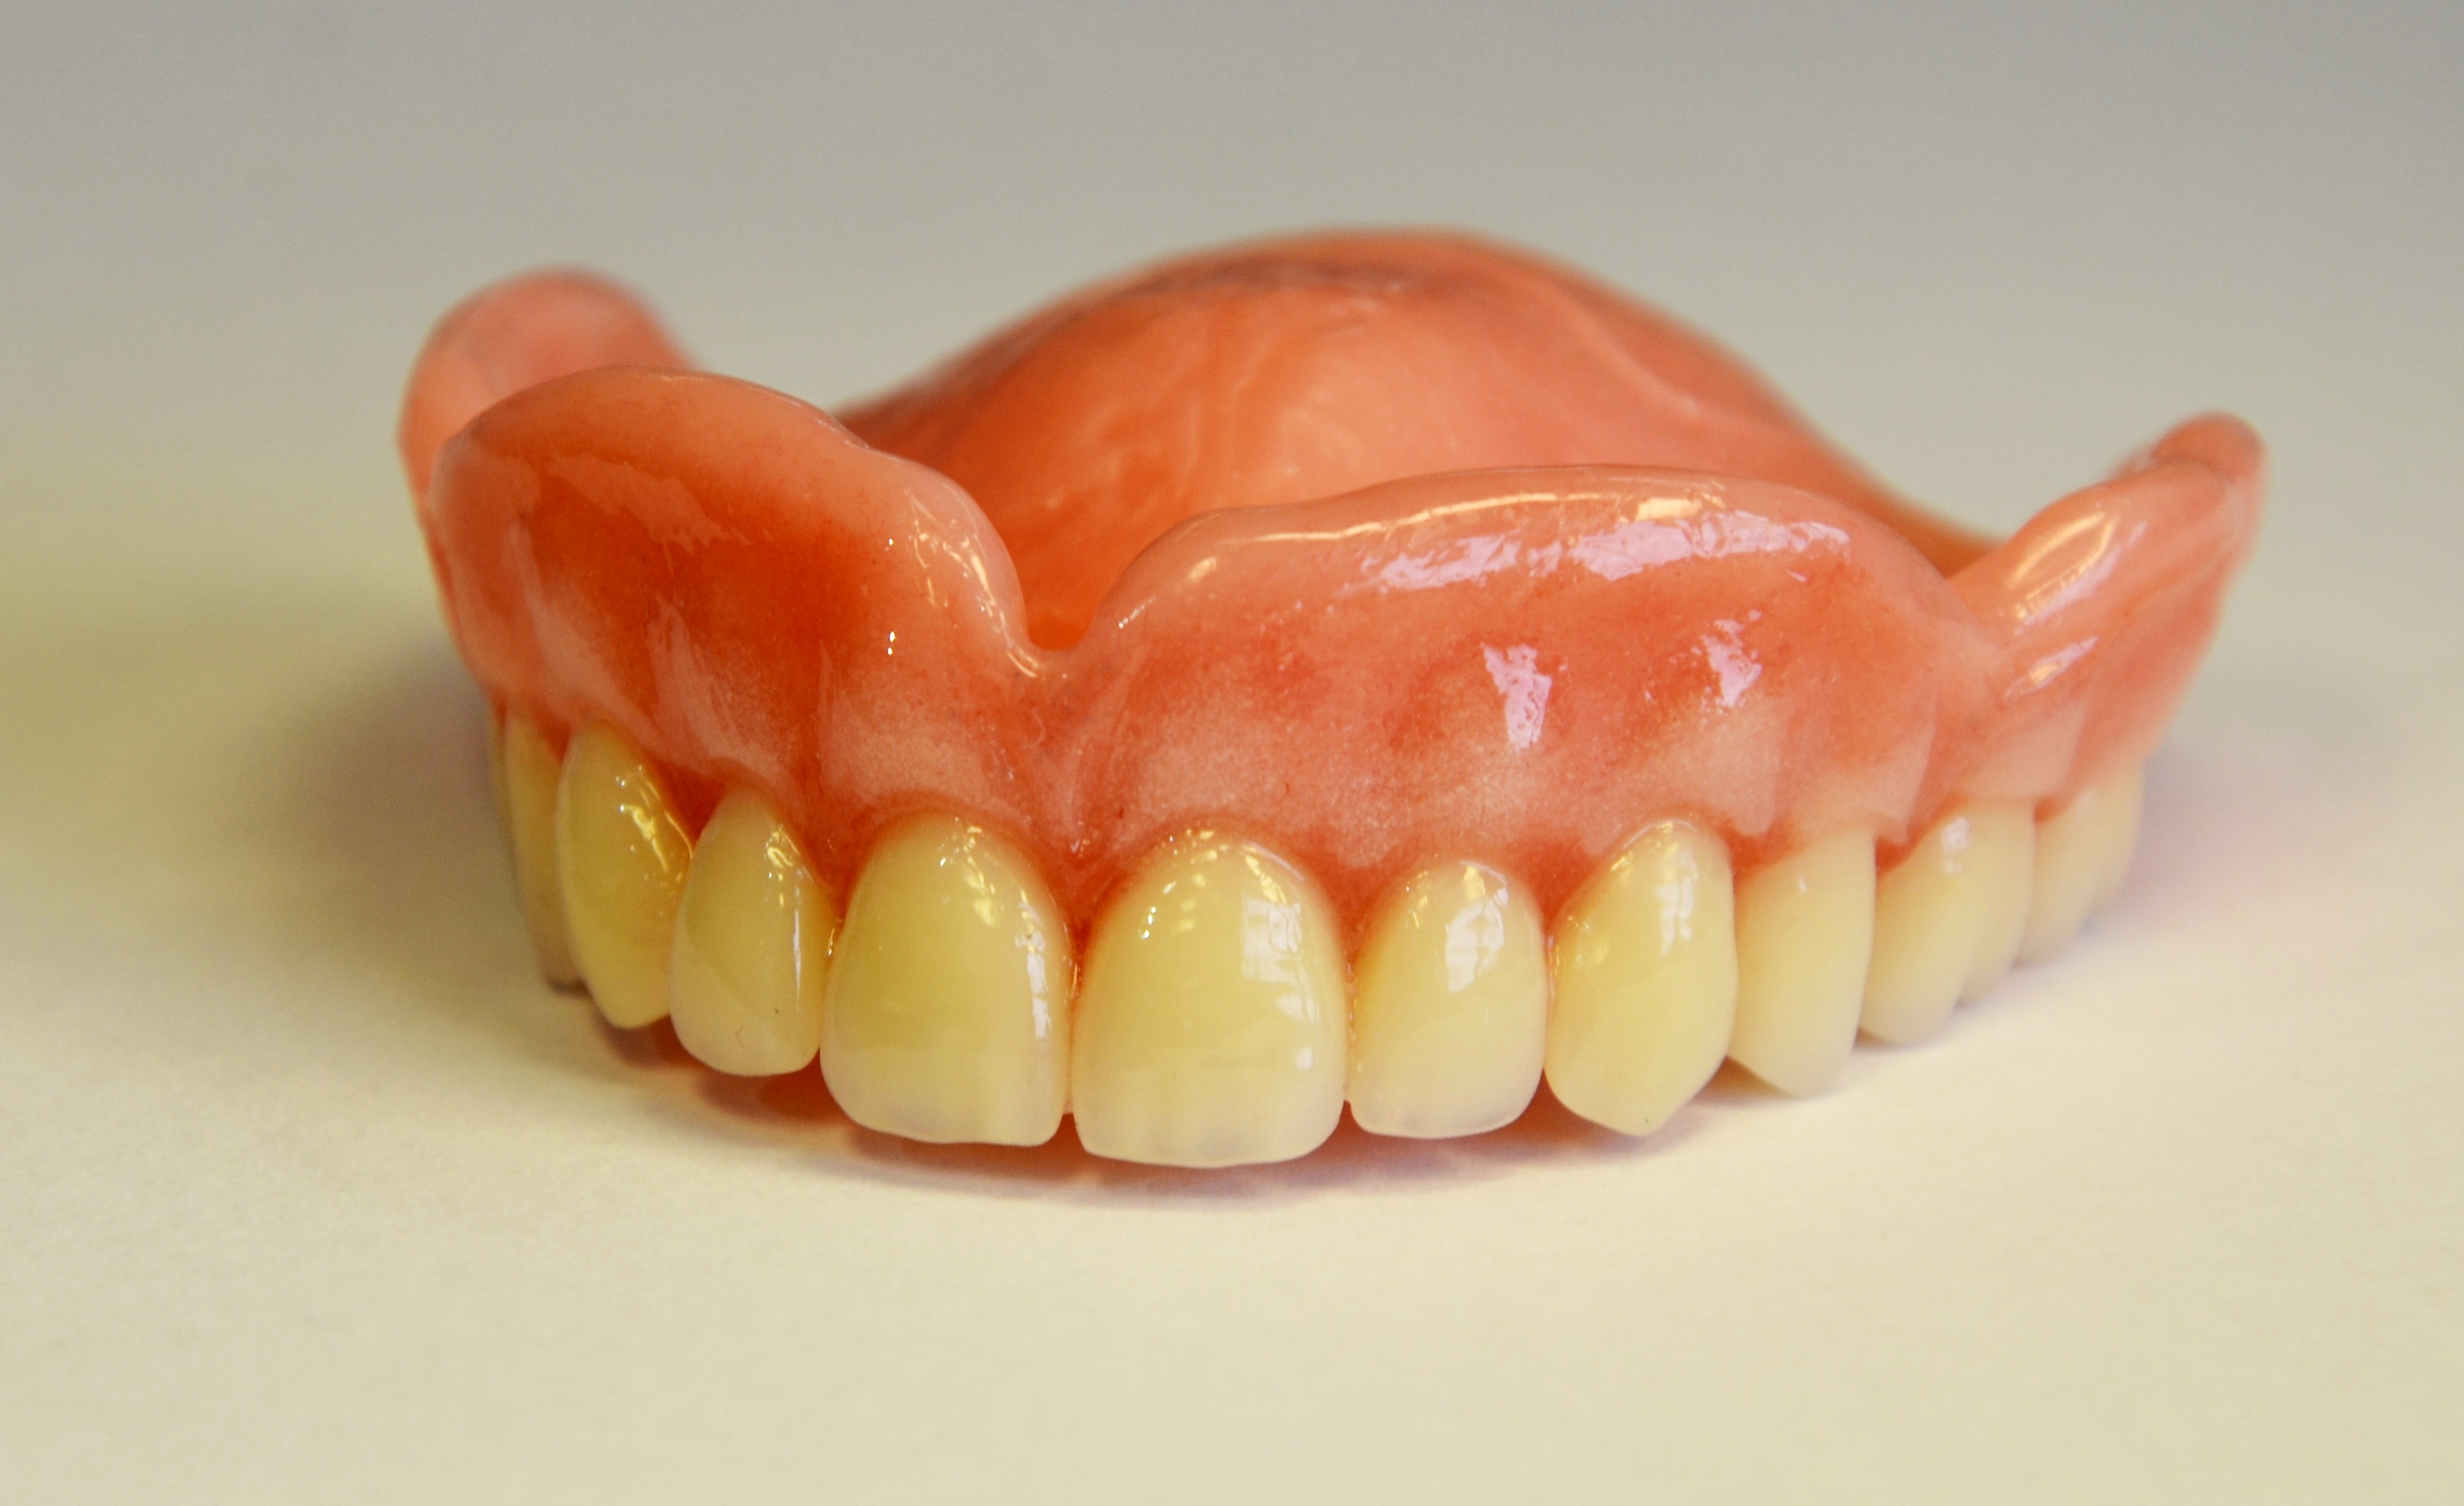 Full upper denture